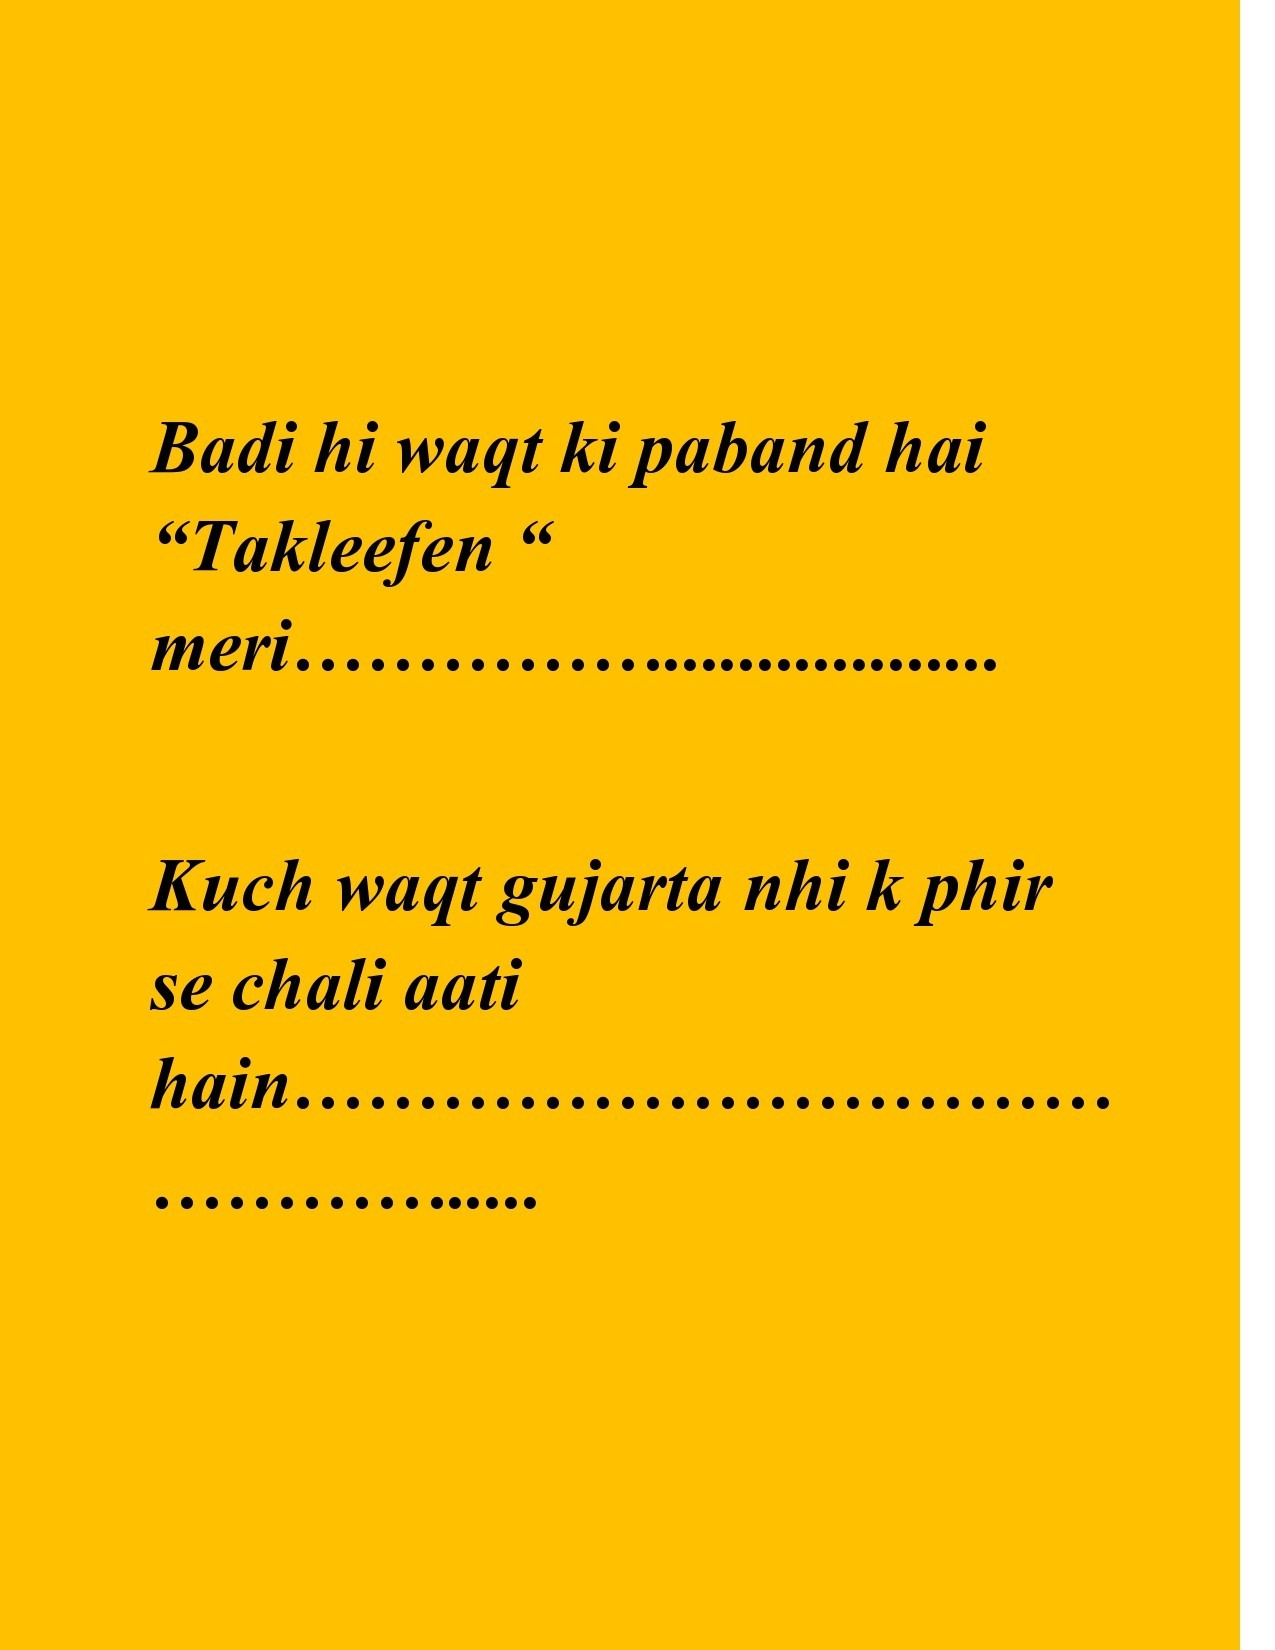 ... shayari quotes sms message valentines day how to with girl hurt anger